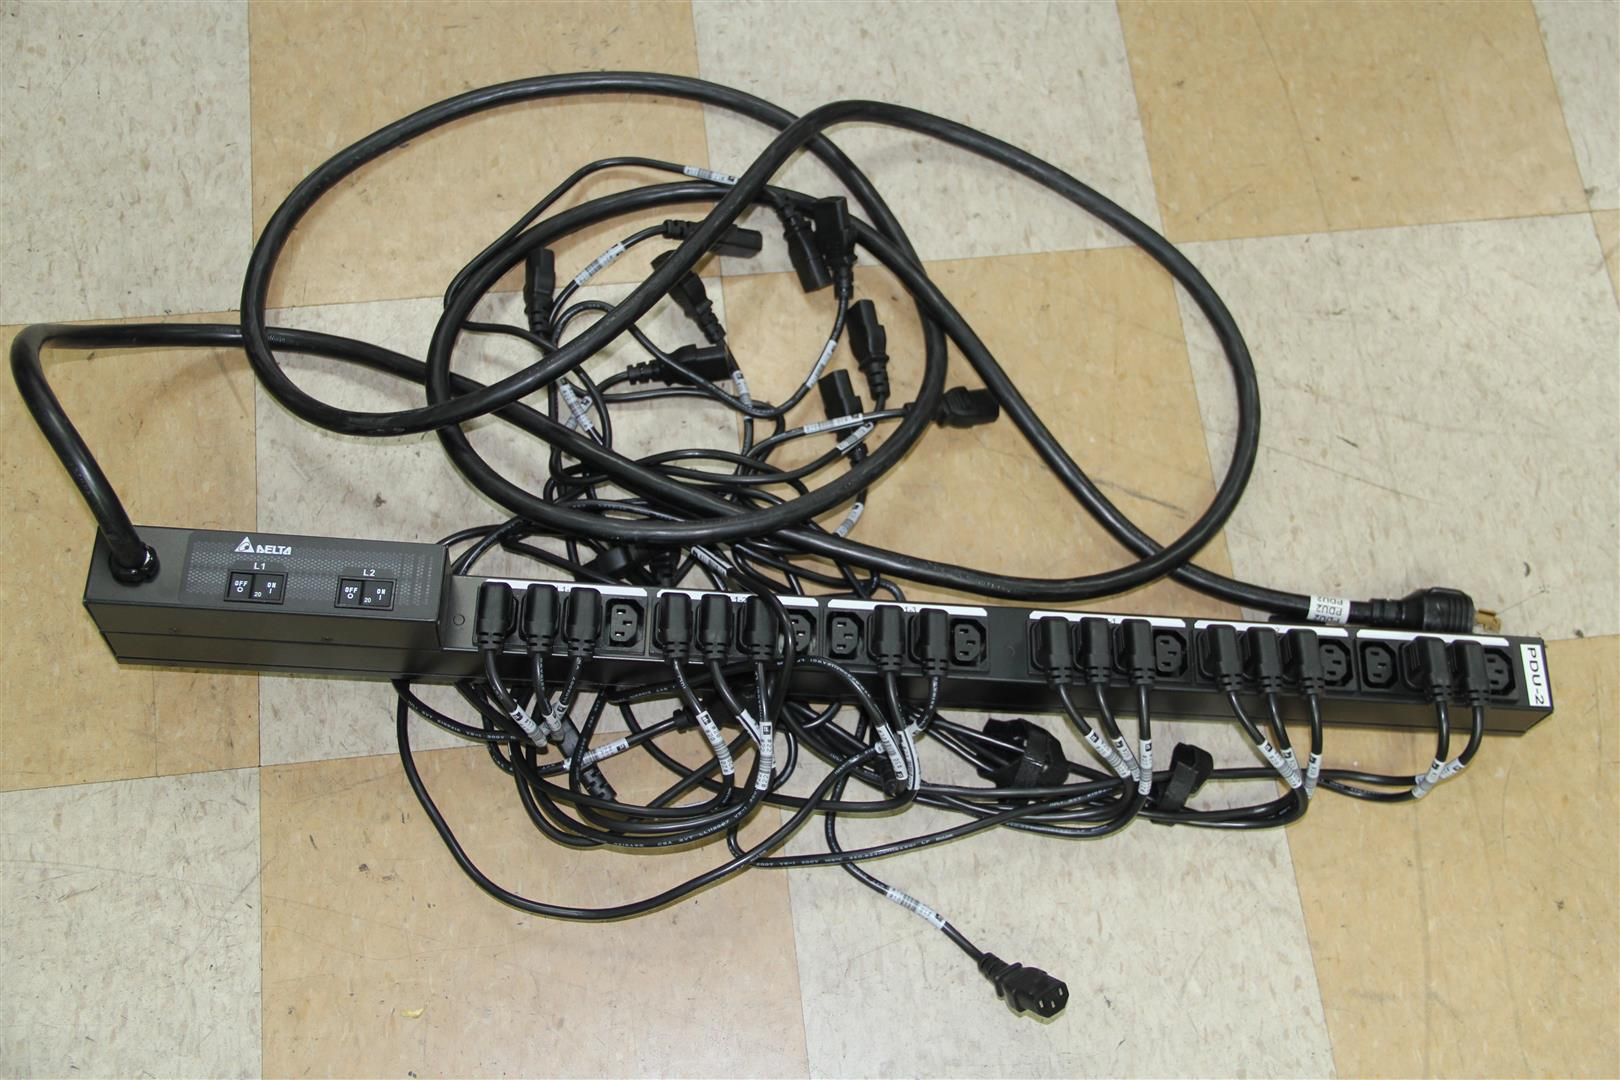 24 Outlet Delta Vertical 24 Outlet Power Distribution Unit Strip Pdu